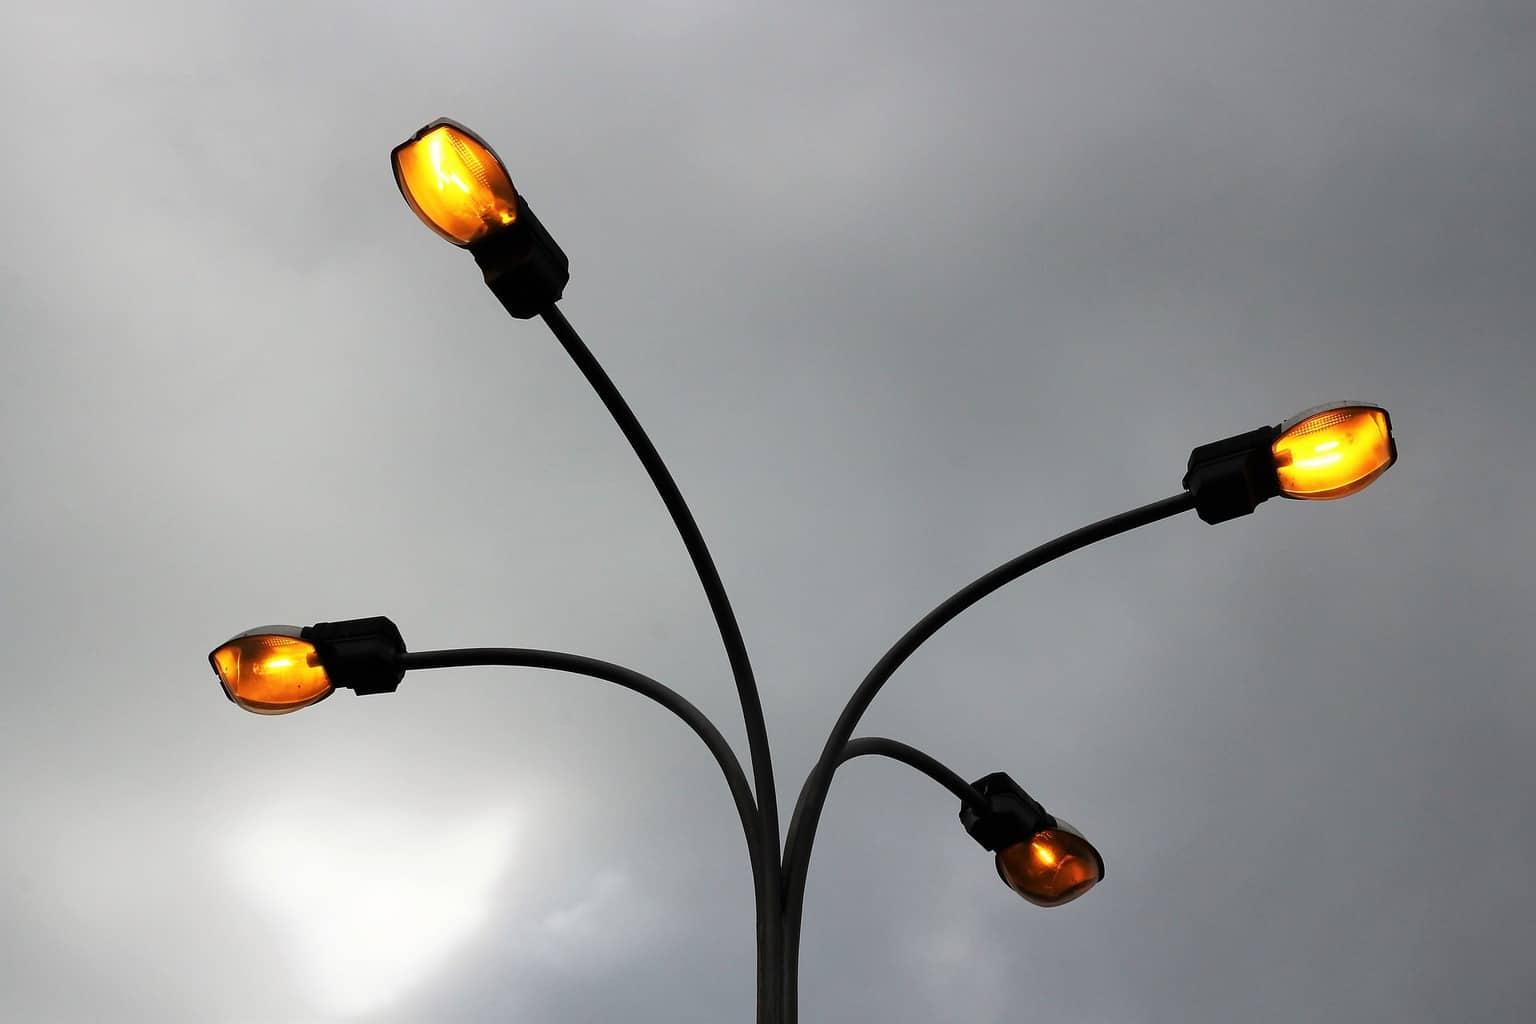 Outdoor LED lamp lights working with photocells